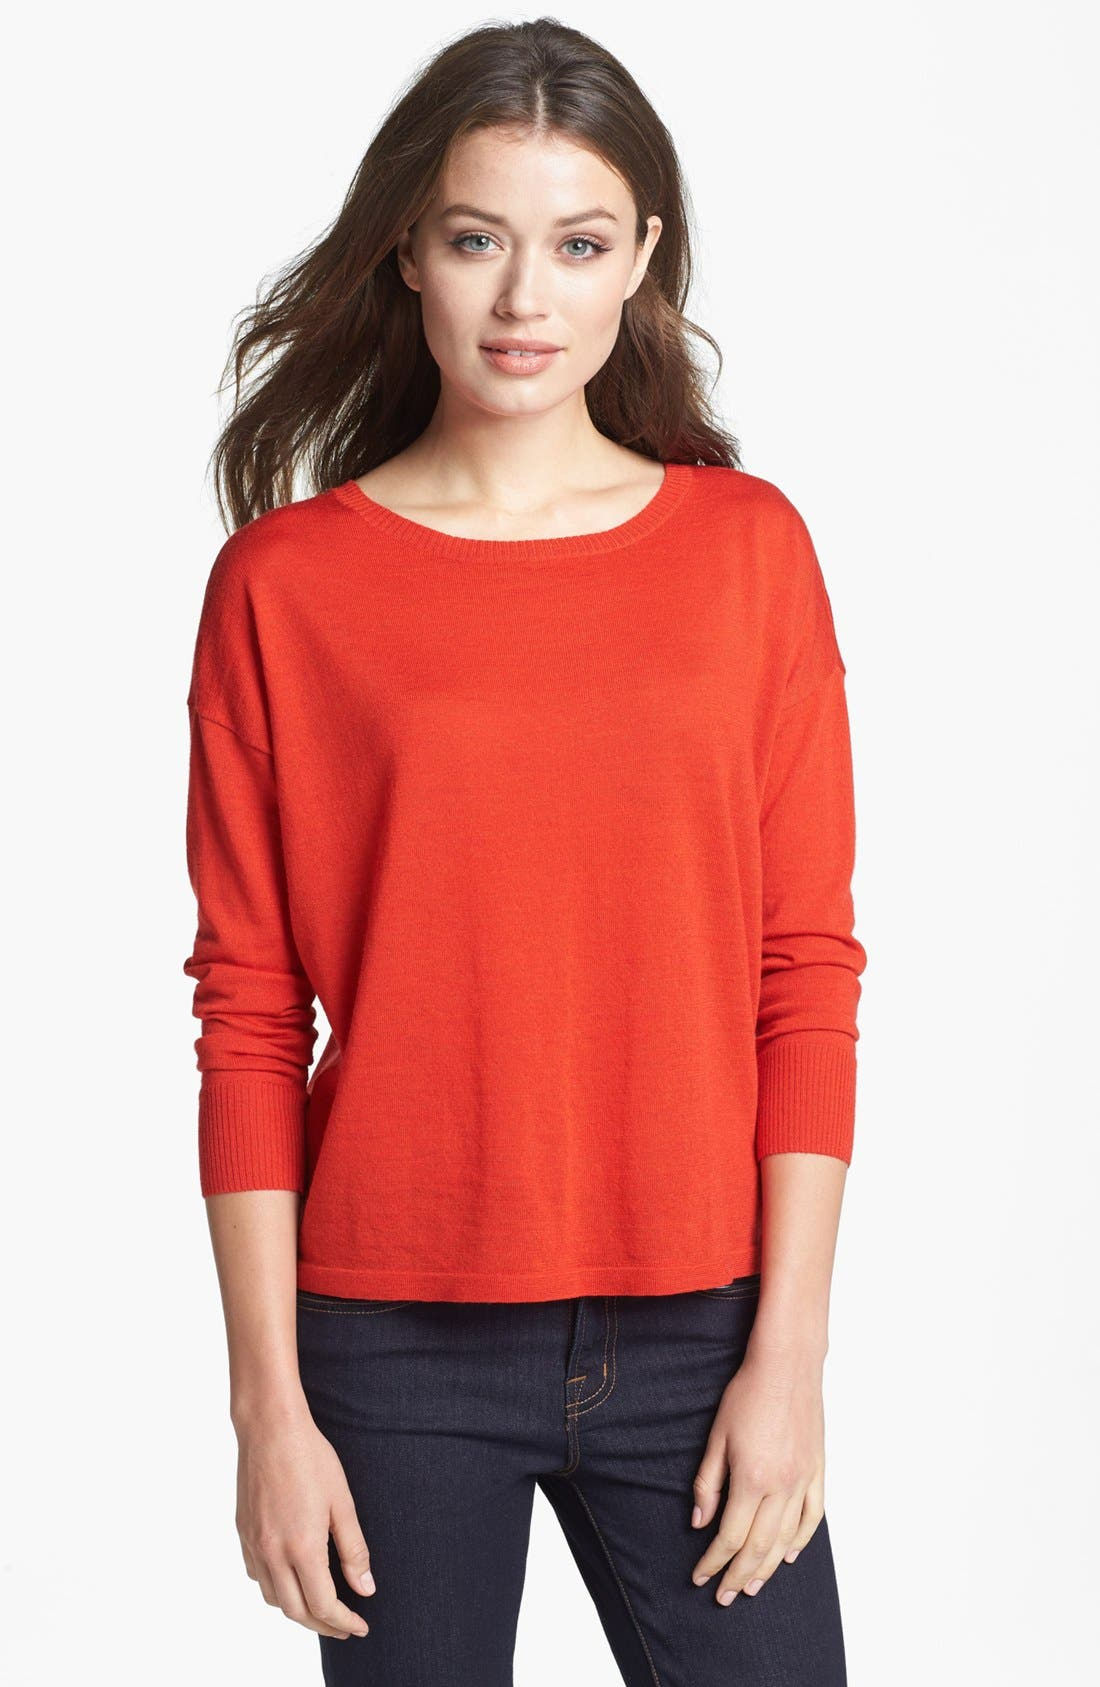 Alternate Image 1 Selected - Eileen Fisher Fine Merino Jersey Boatneck Top